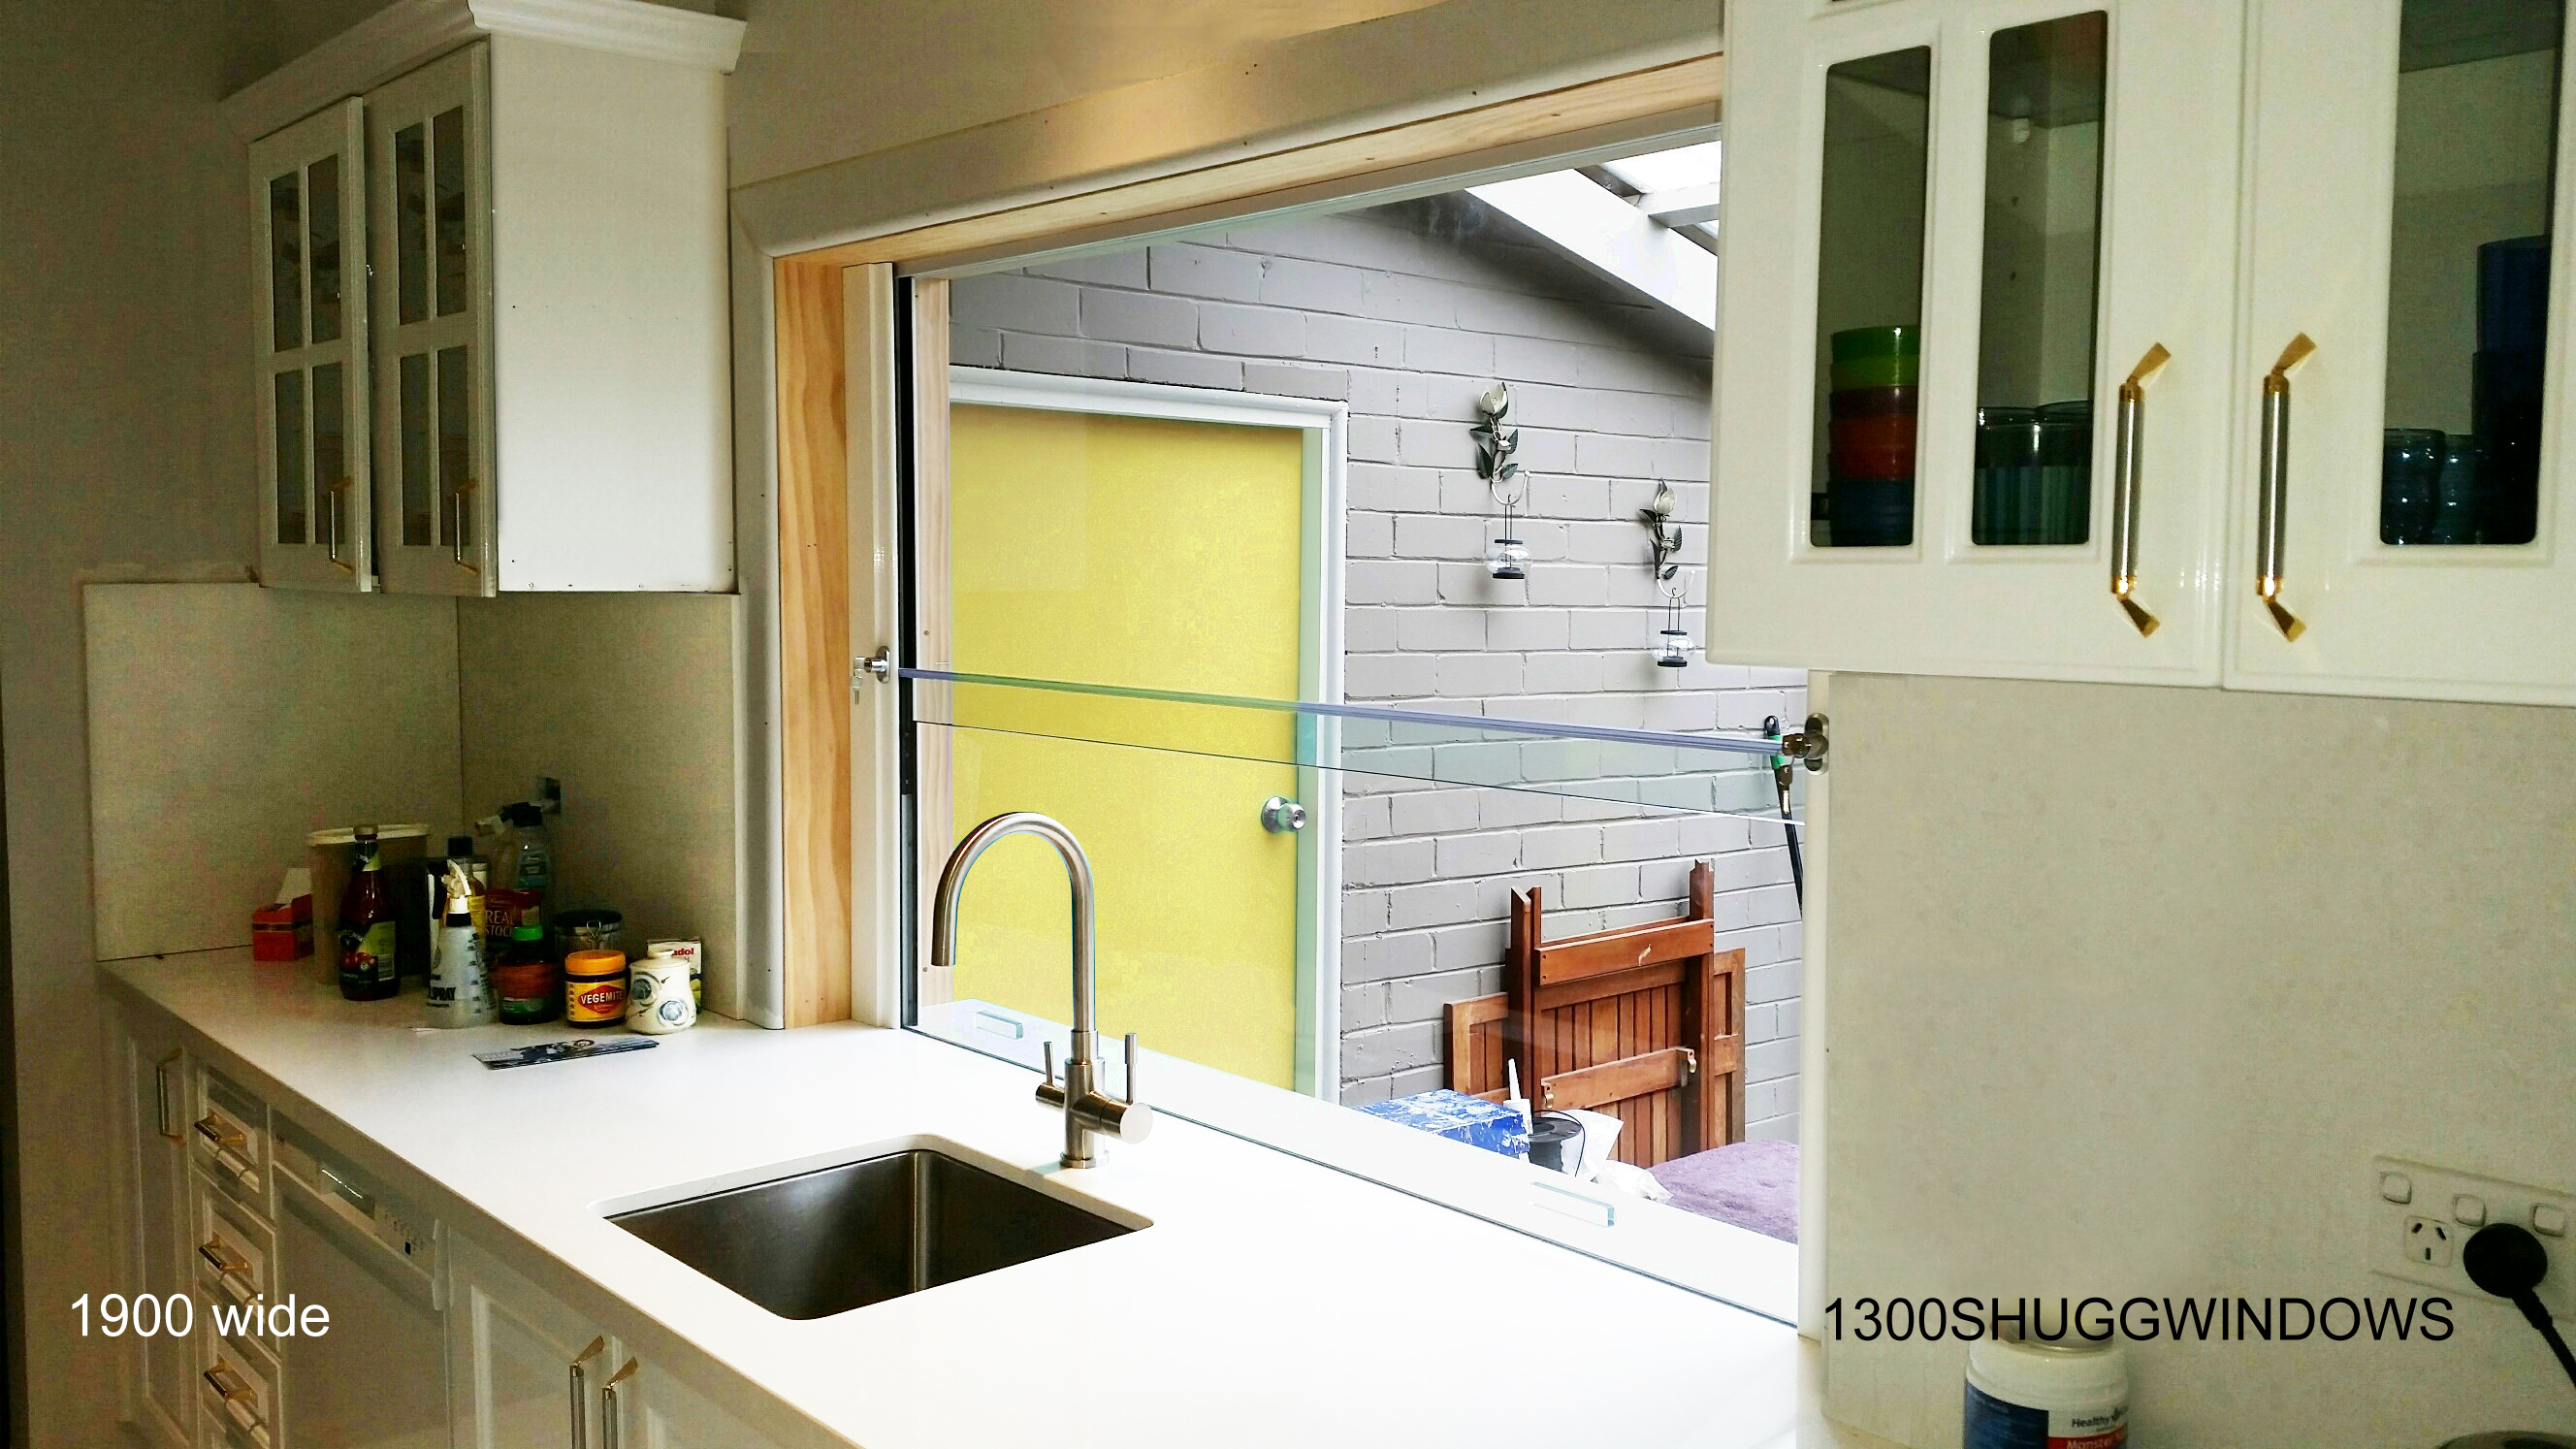 Kitchen windows shugg windowsshugg windows for Kitchen ideas no window